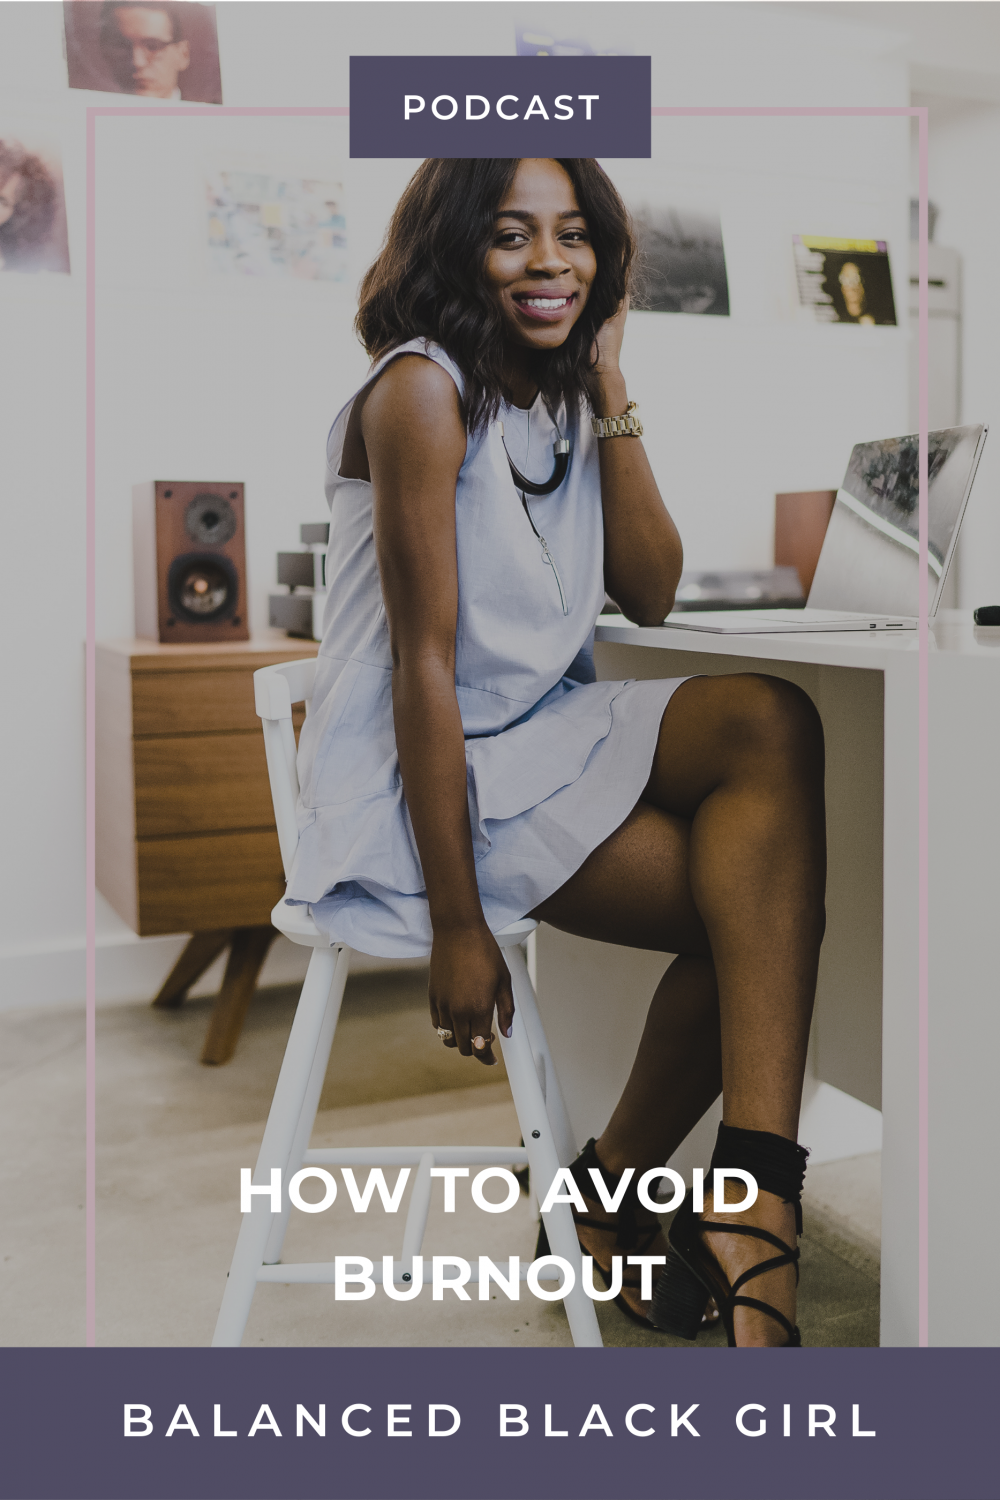 Feel Good Friday 14: How to Avoid Burnout